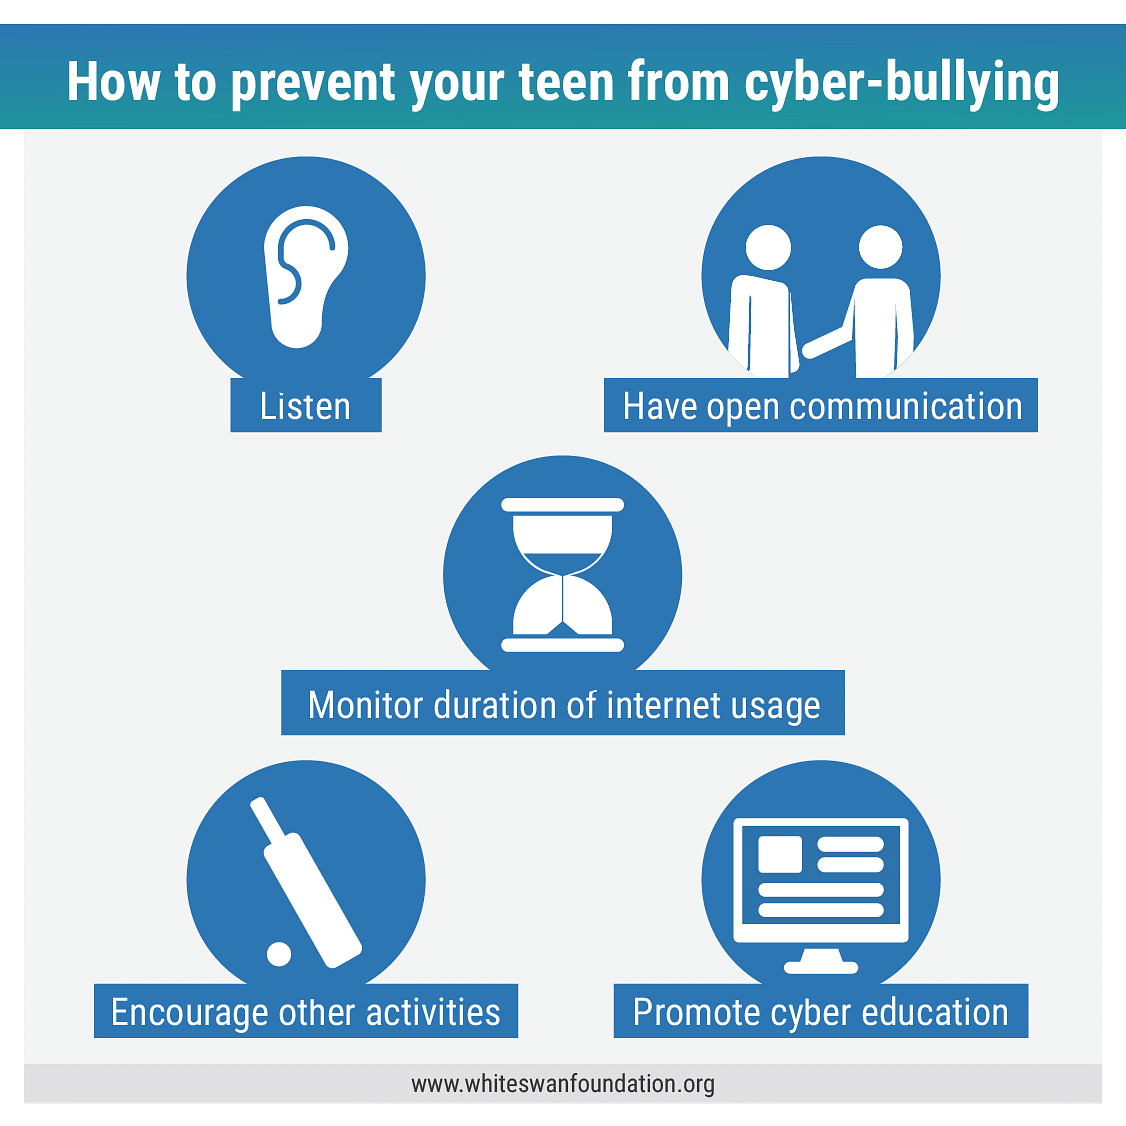 How to prevent your teen from cyber-bullying